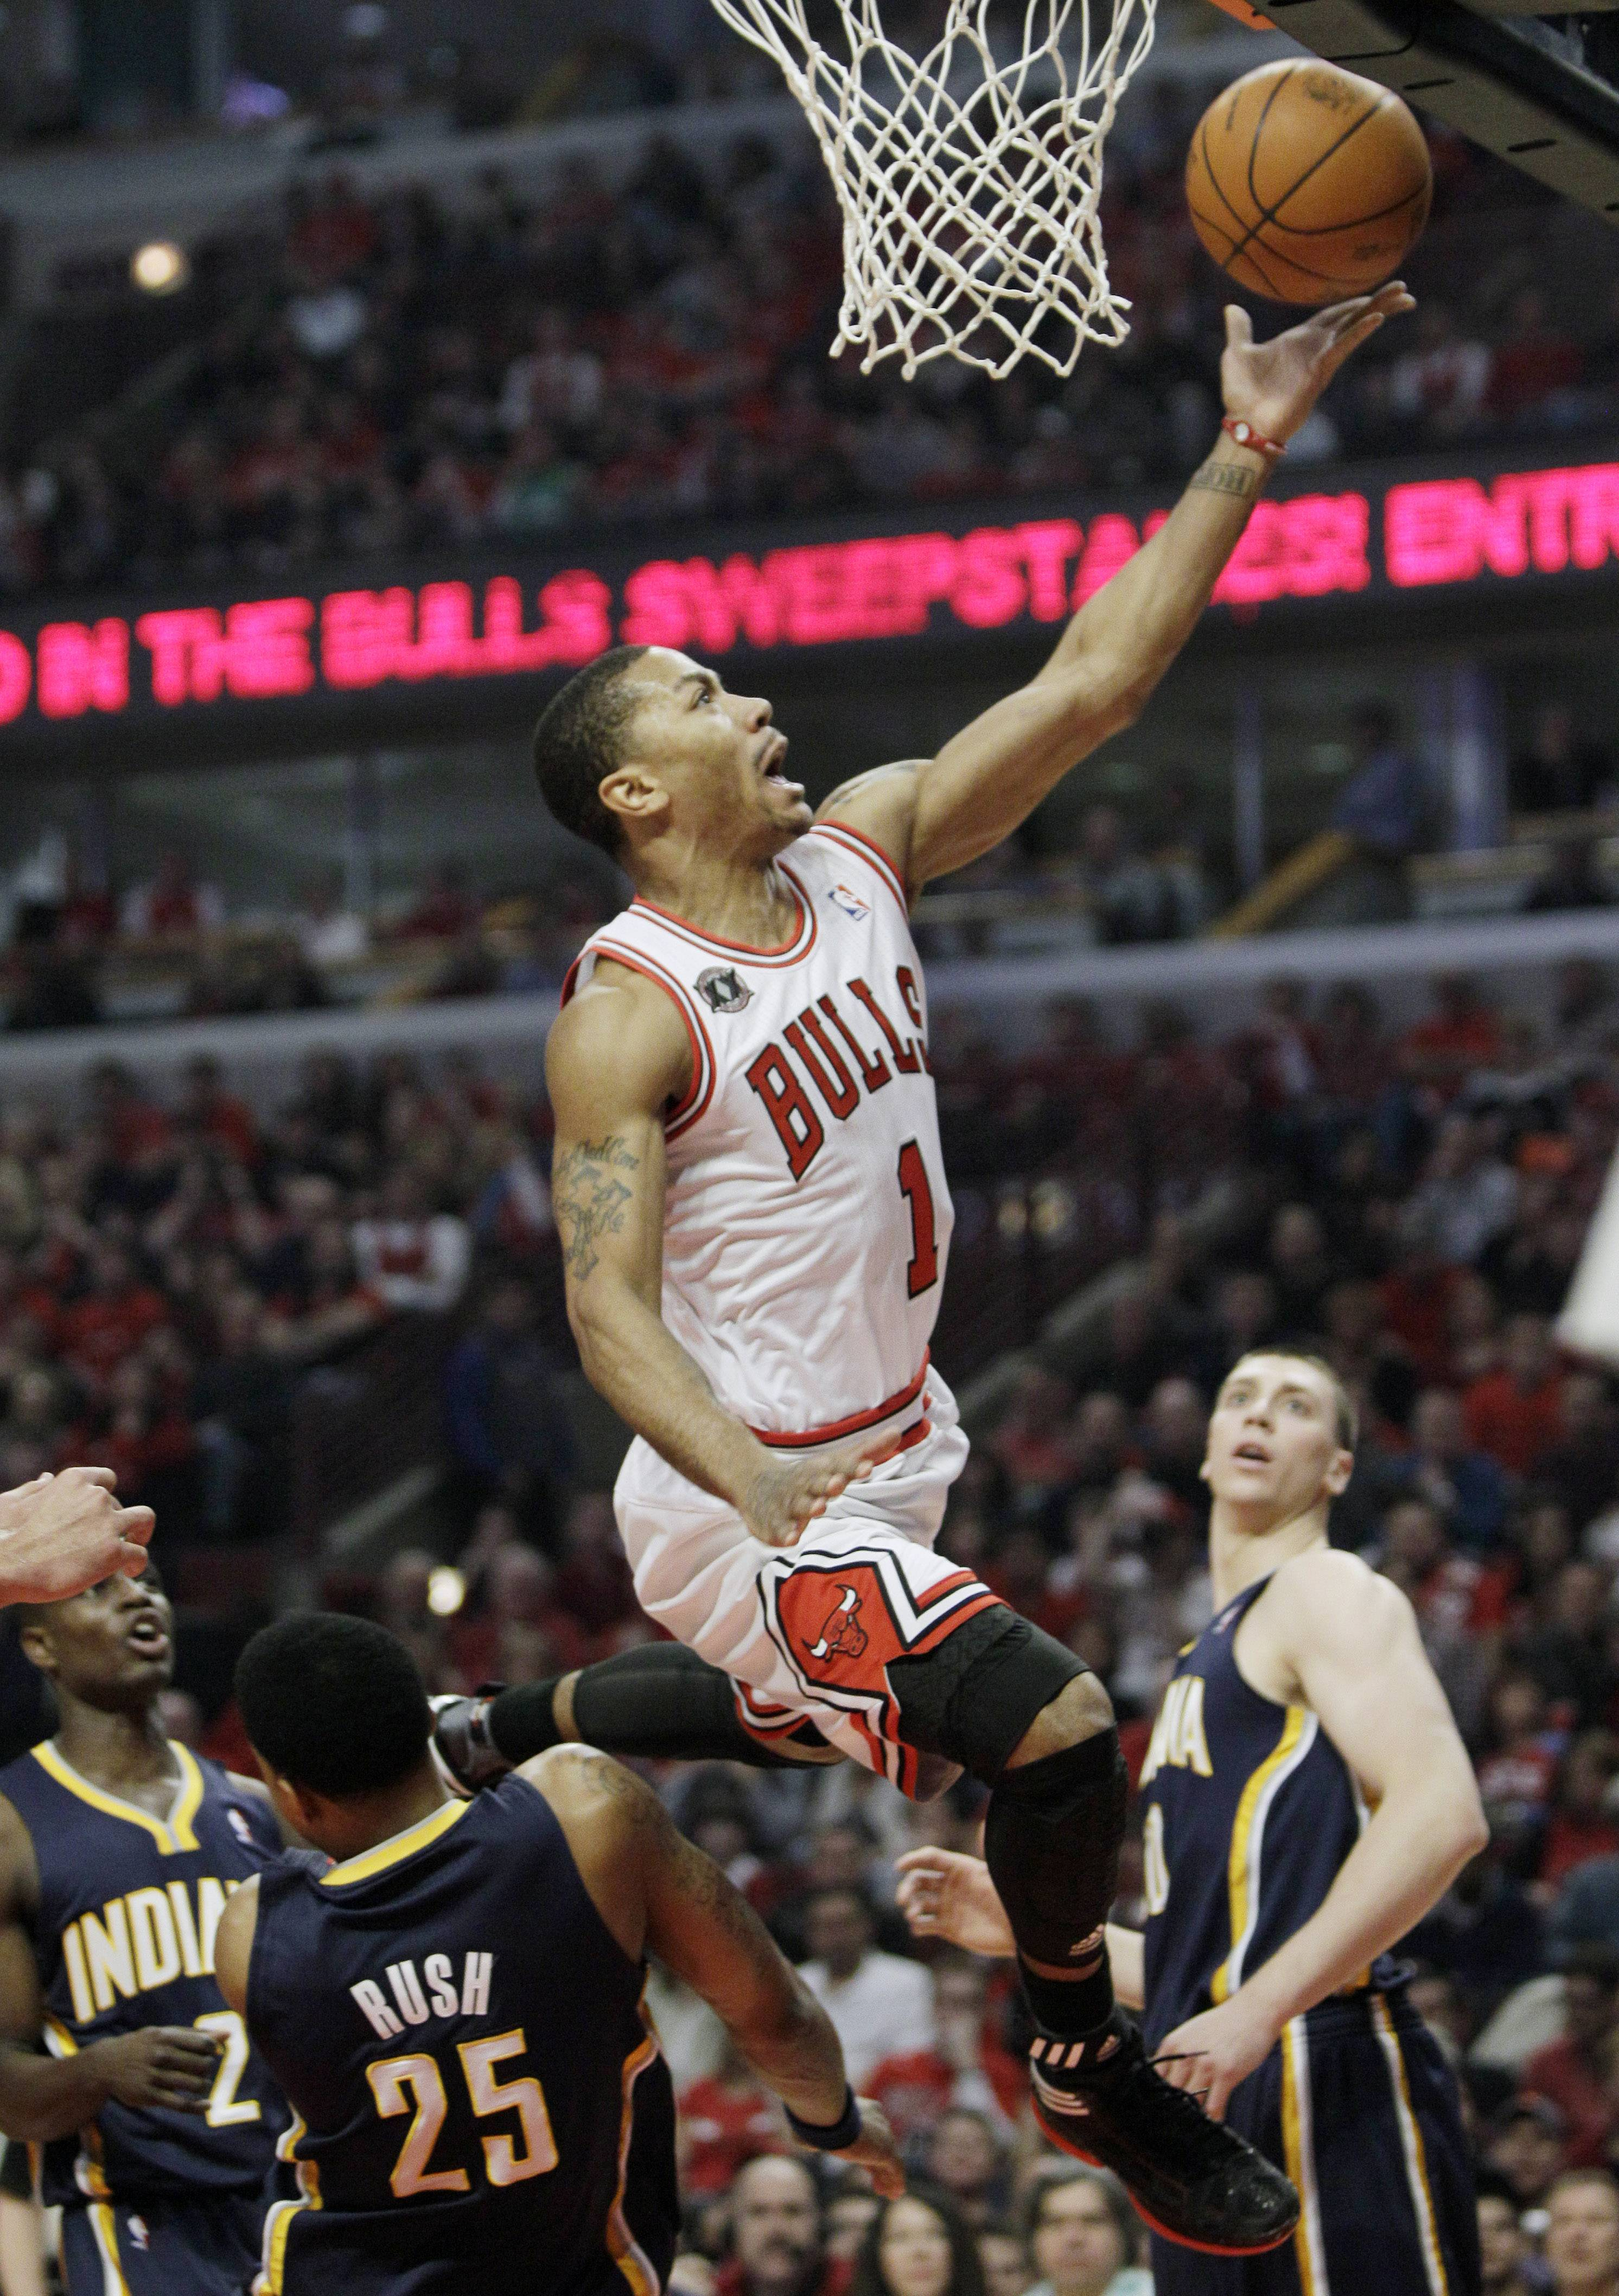 Derrick Rose drives to the basket against the Indiana Pacers during the first quarter in Game 1 Saturday.